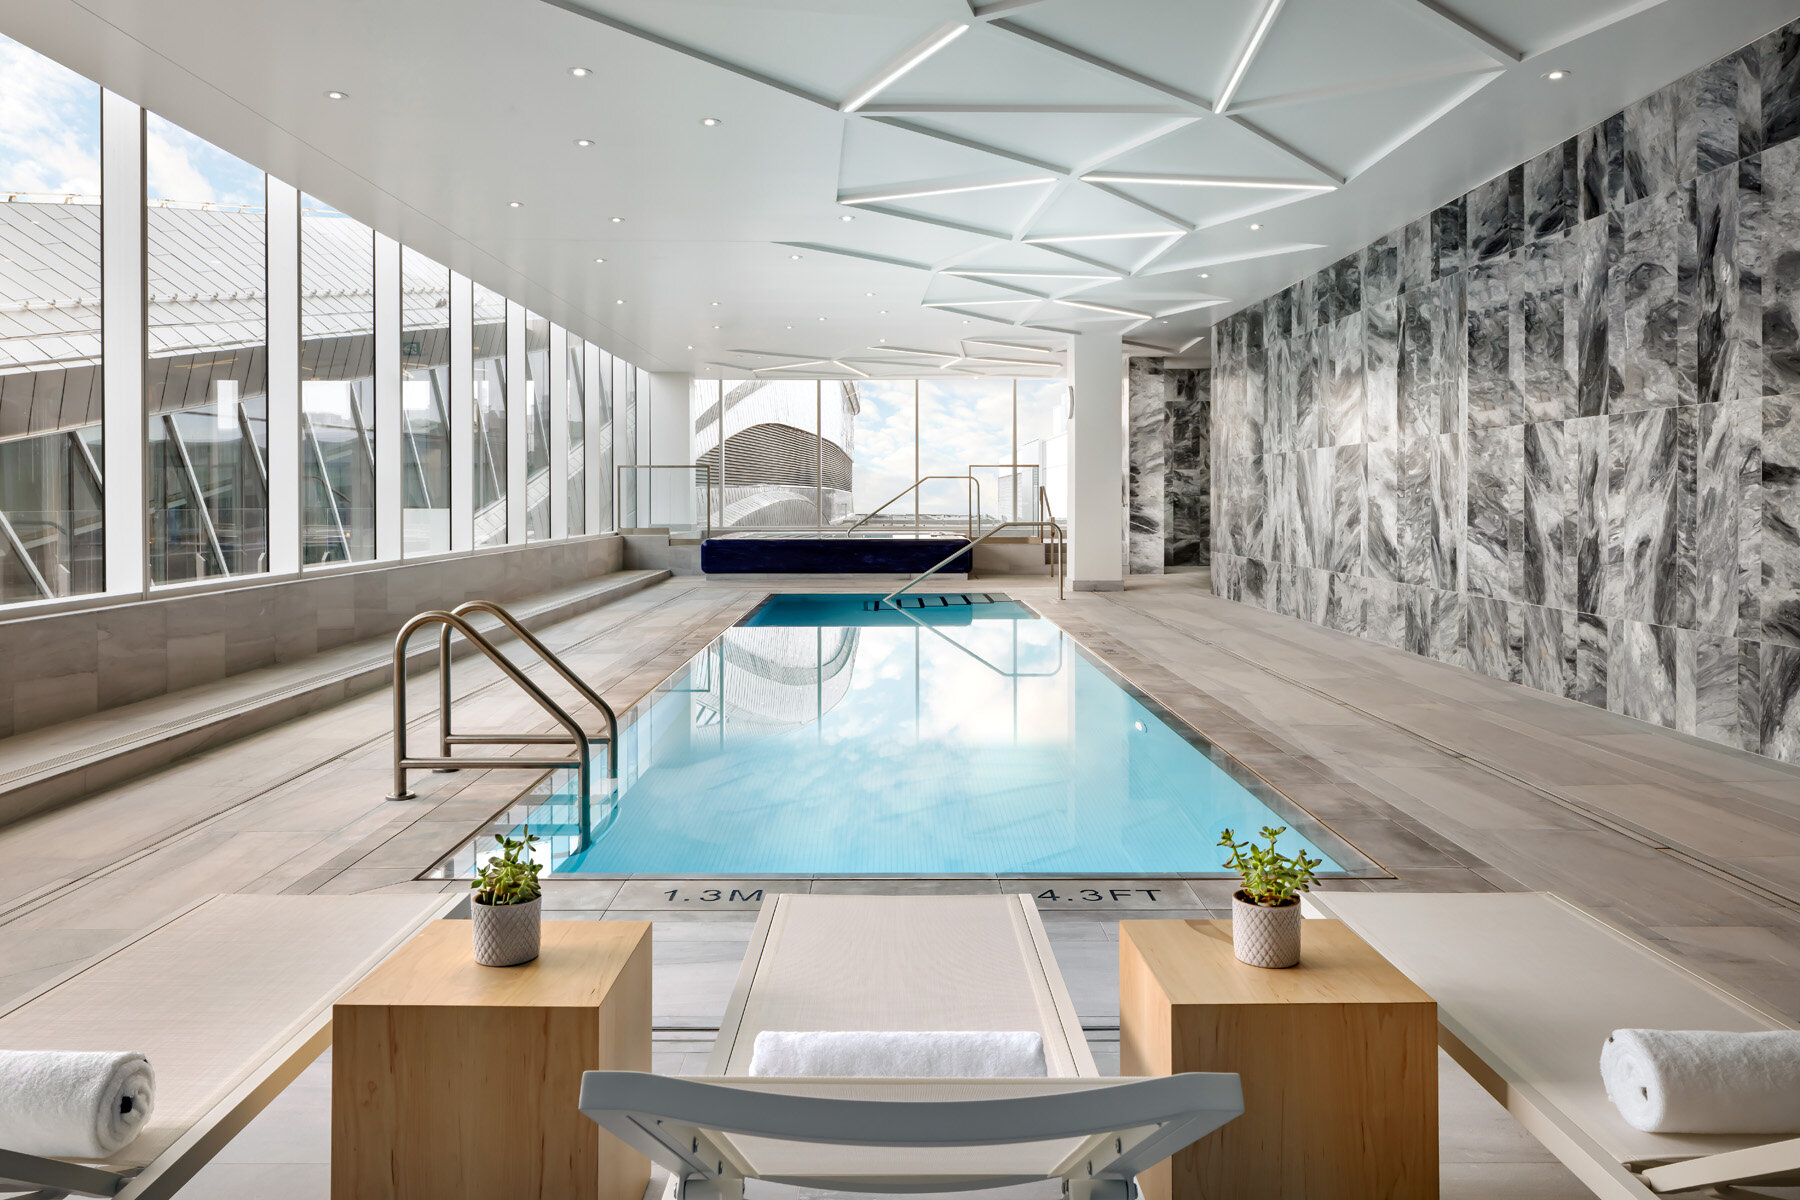 MAXIMIZE YOUR WELLNESS - Our purposeful spaces allow you to engineer your fitness, health and recovery to suit your individual needs. We make it personal.